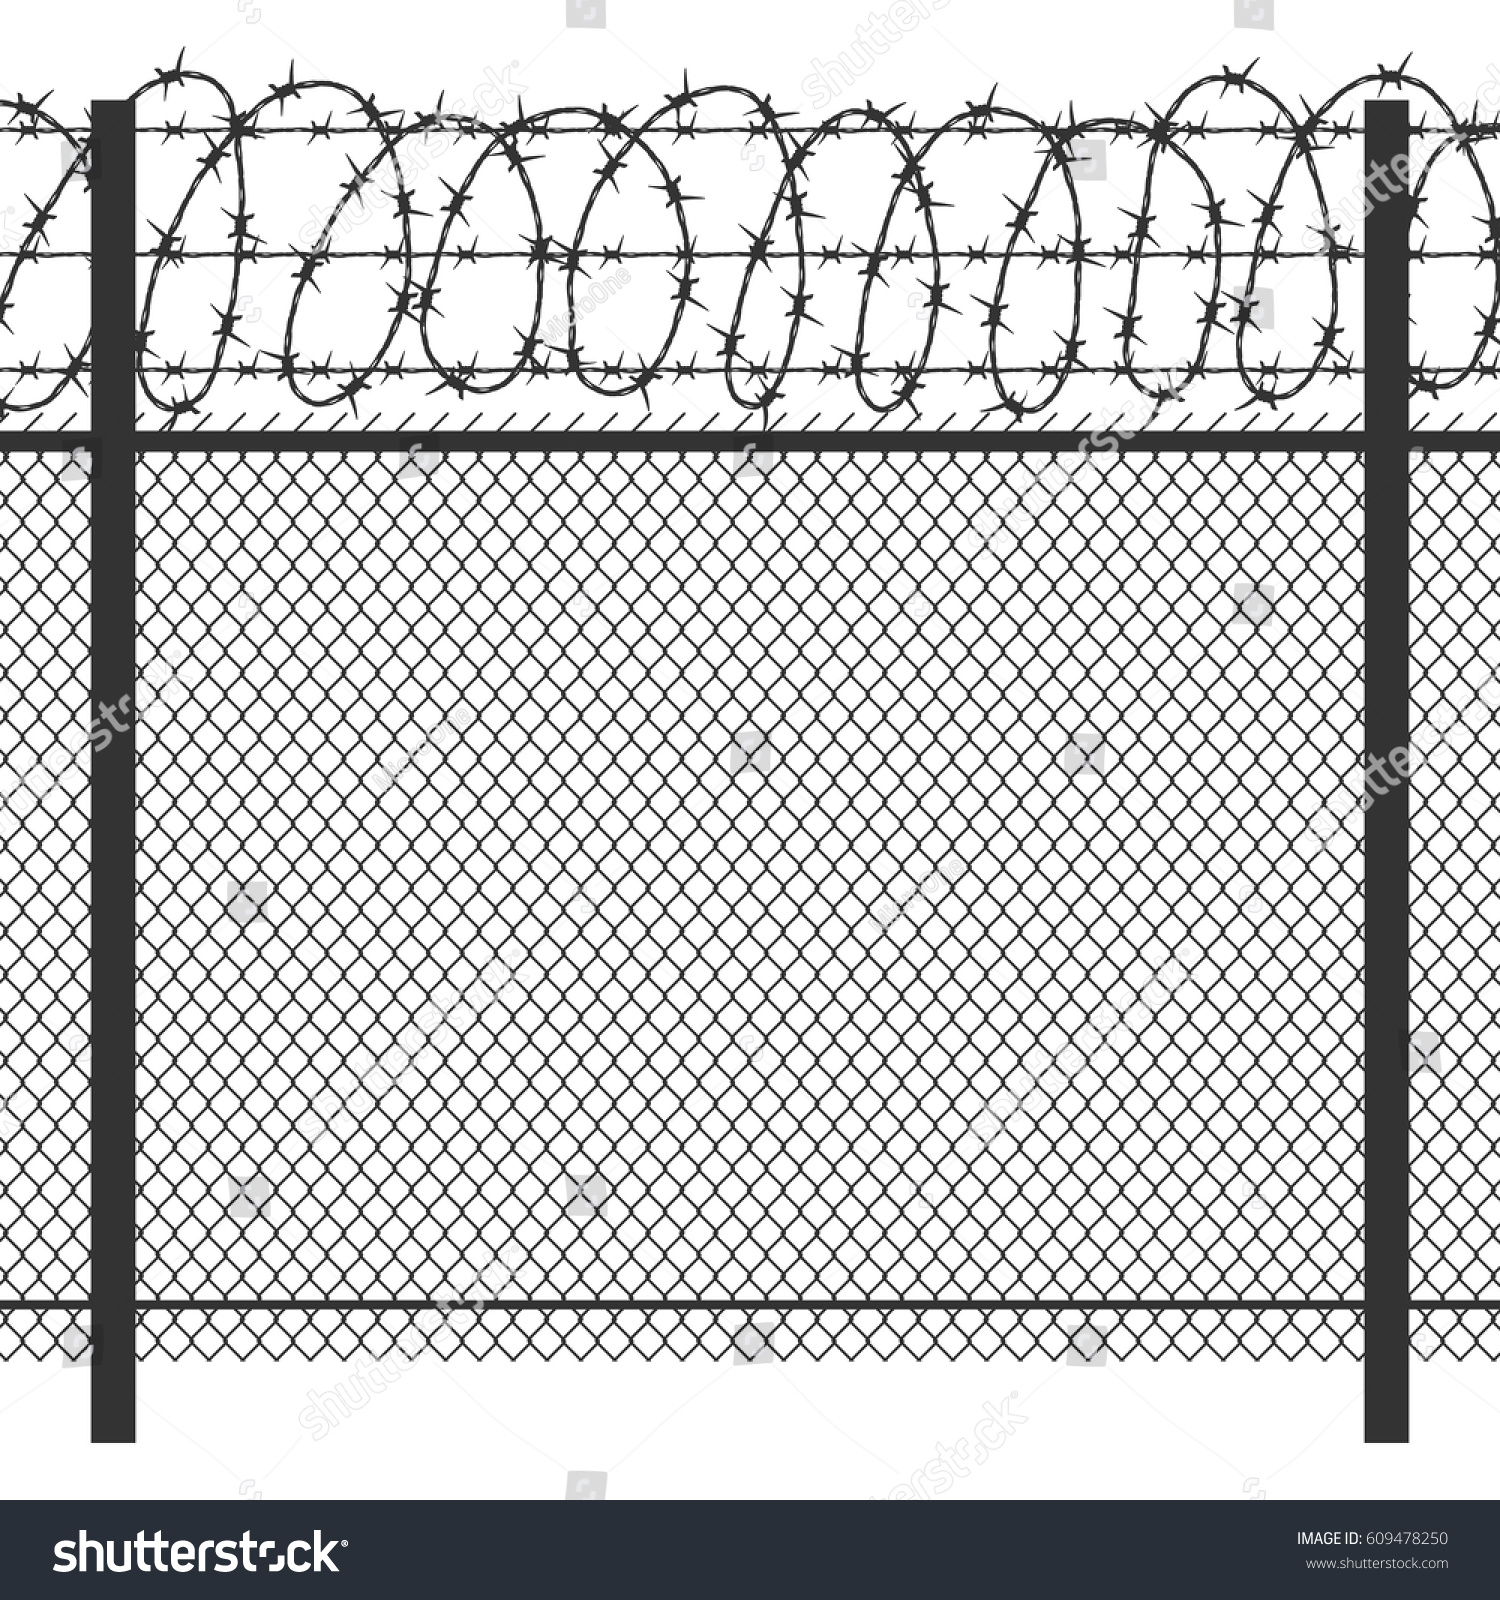 609478250 moreover letterboxwarehouse co in addition 528187862524334202 furthermore Where Will The New Border Walls Go likewise Fencing. on fence wall